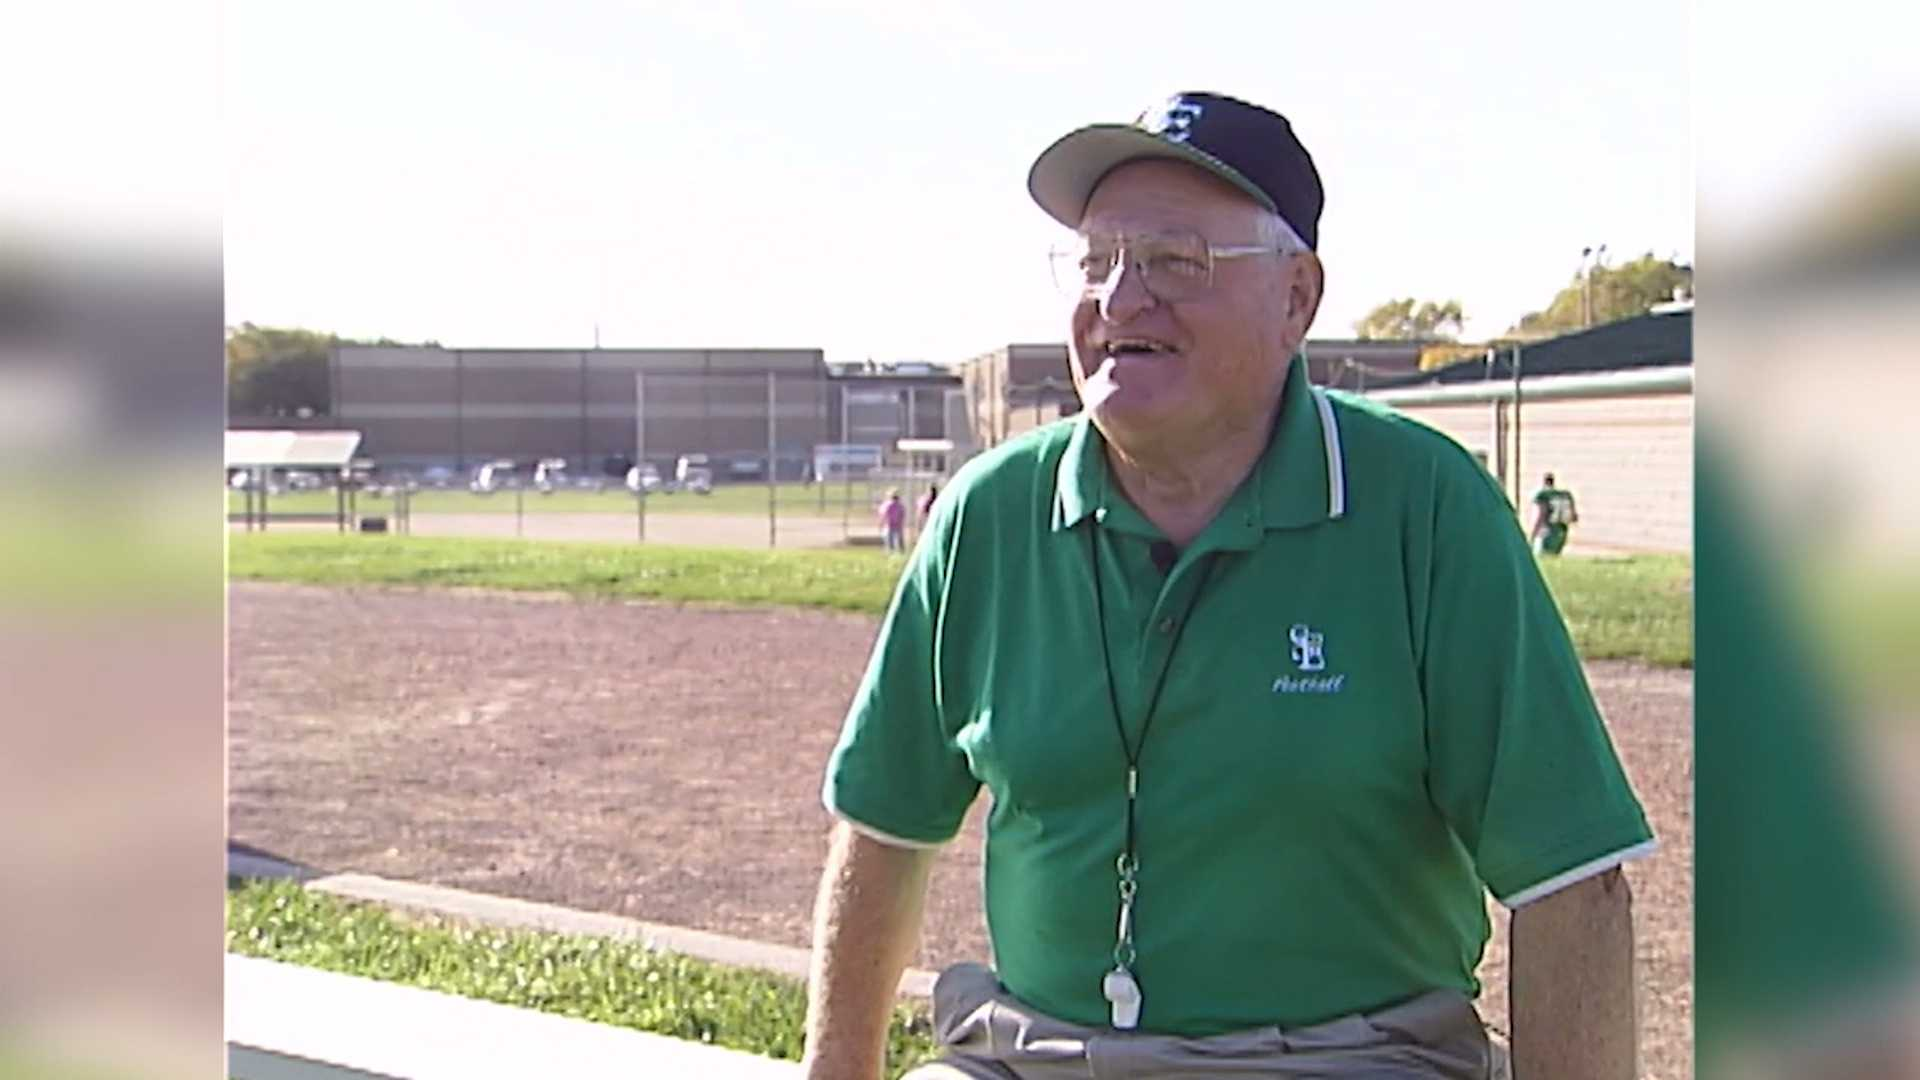 KCCI Sports featured Dick Tighe and the Fort Dodge St. Edmond Gaels in this segment during the 2006 season.